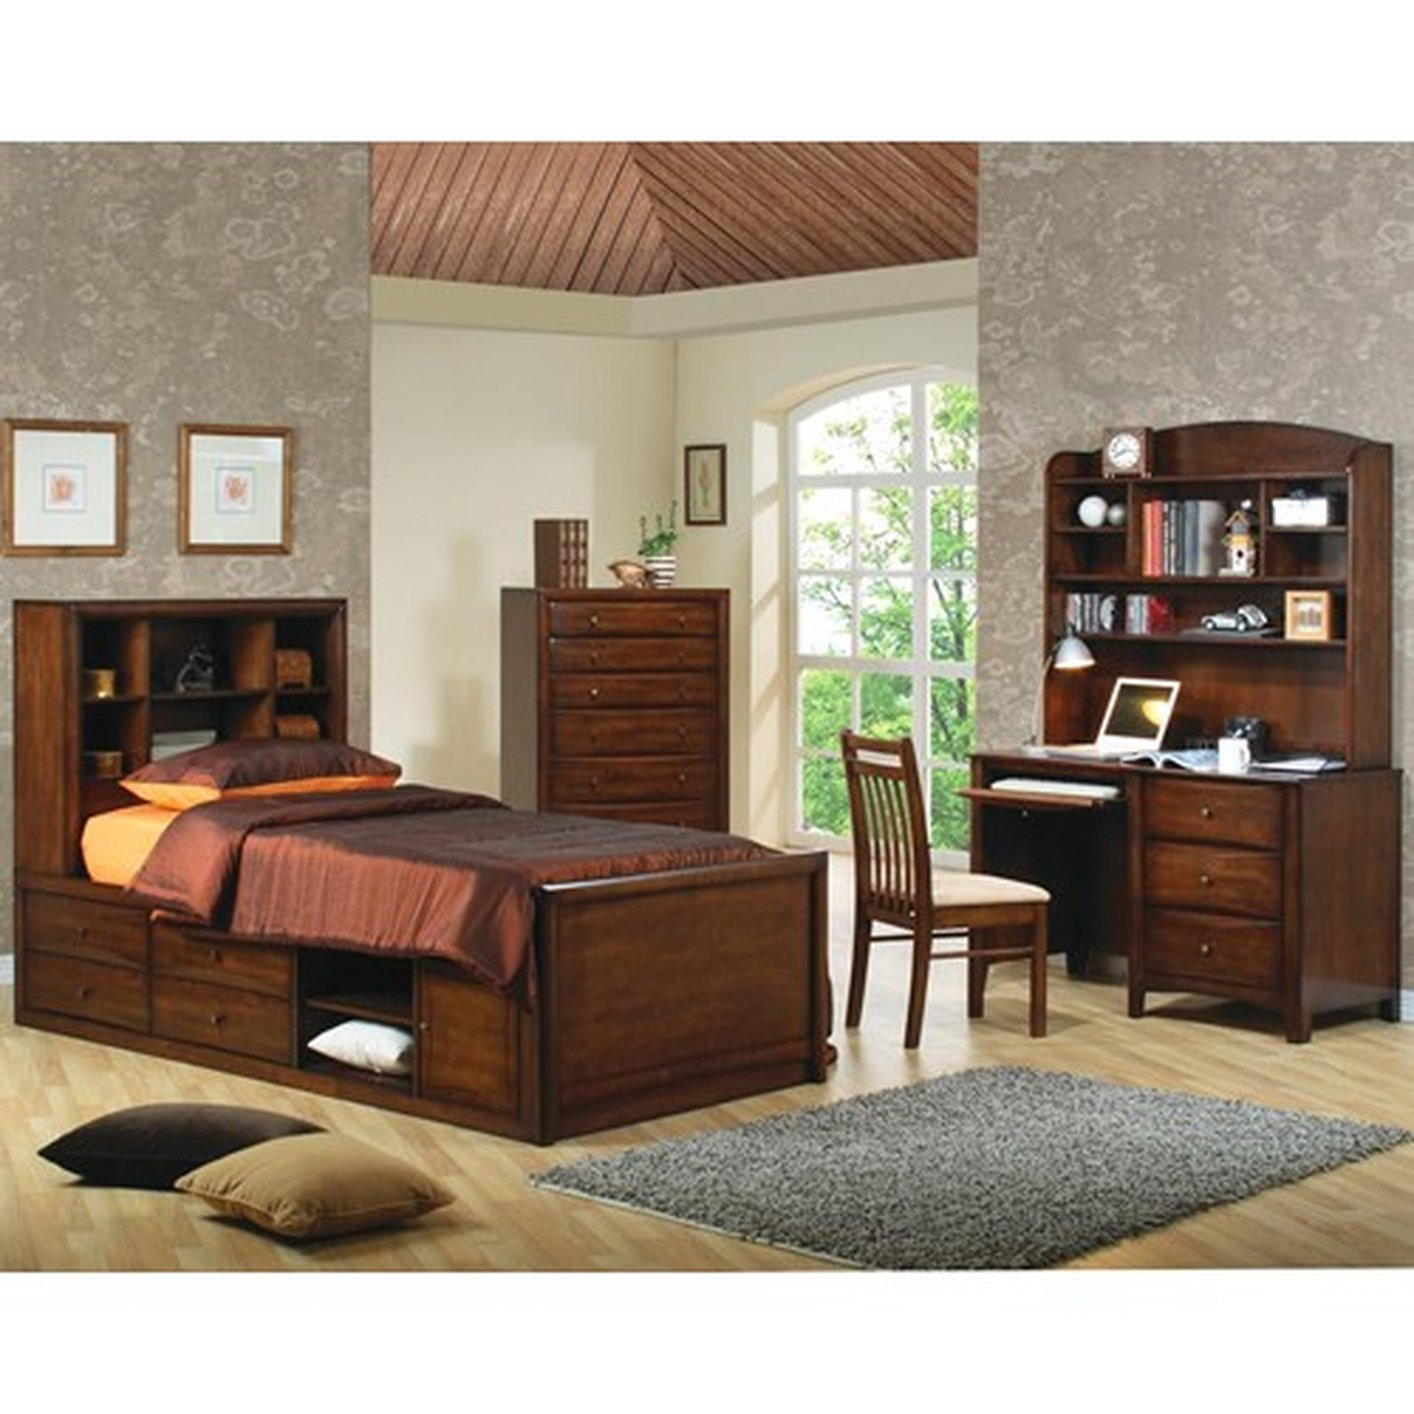 Small Bedroom Chest Of Drawers Coaster 200645 Brown Wood Chest Of Drawers Steal A Sofa